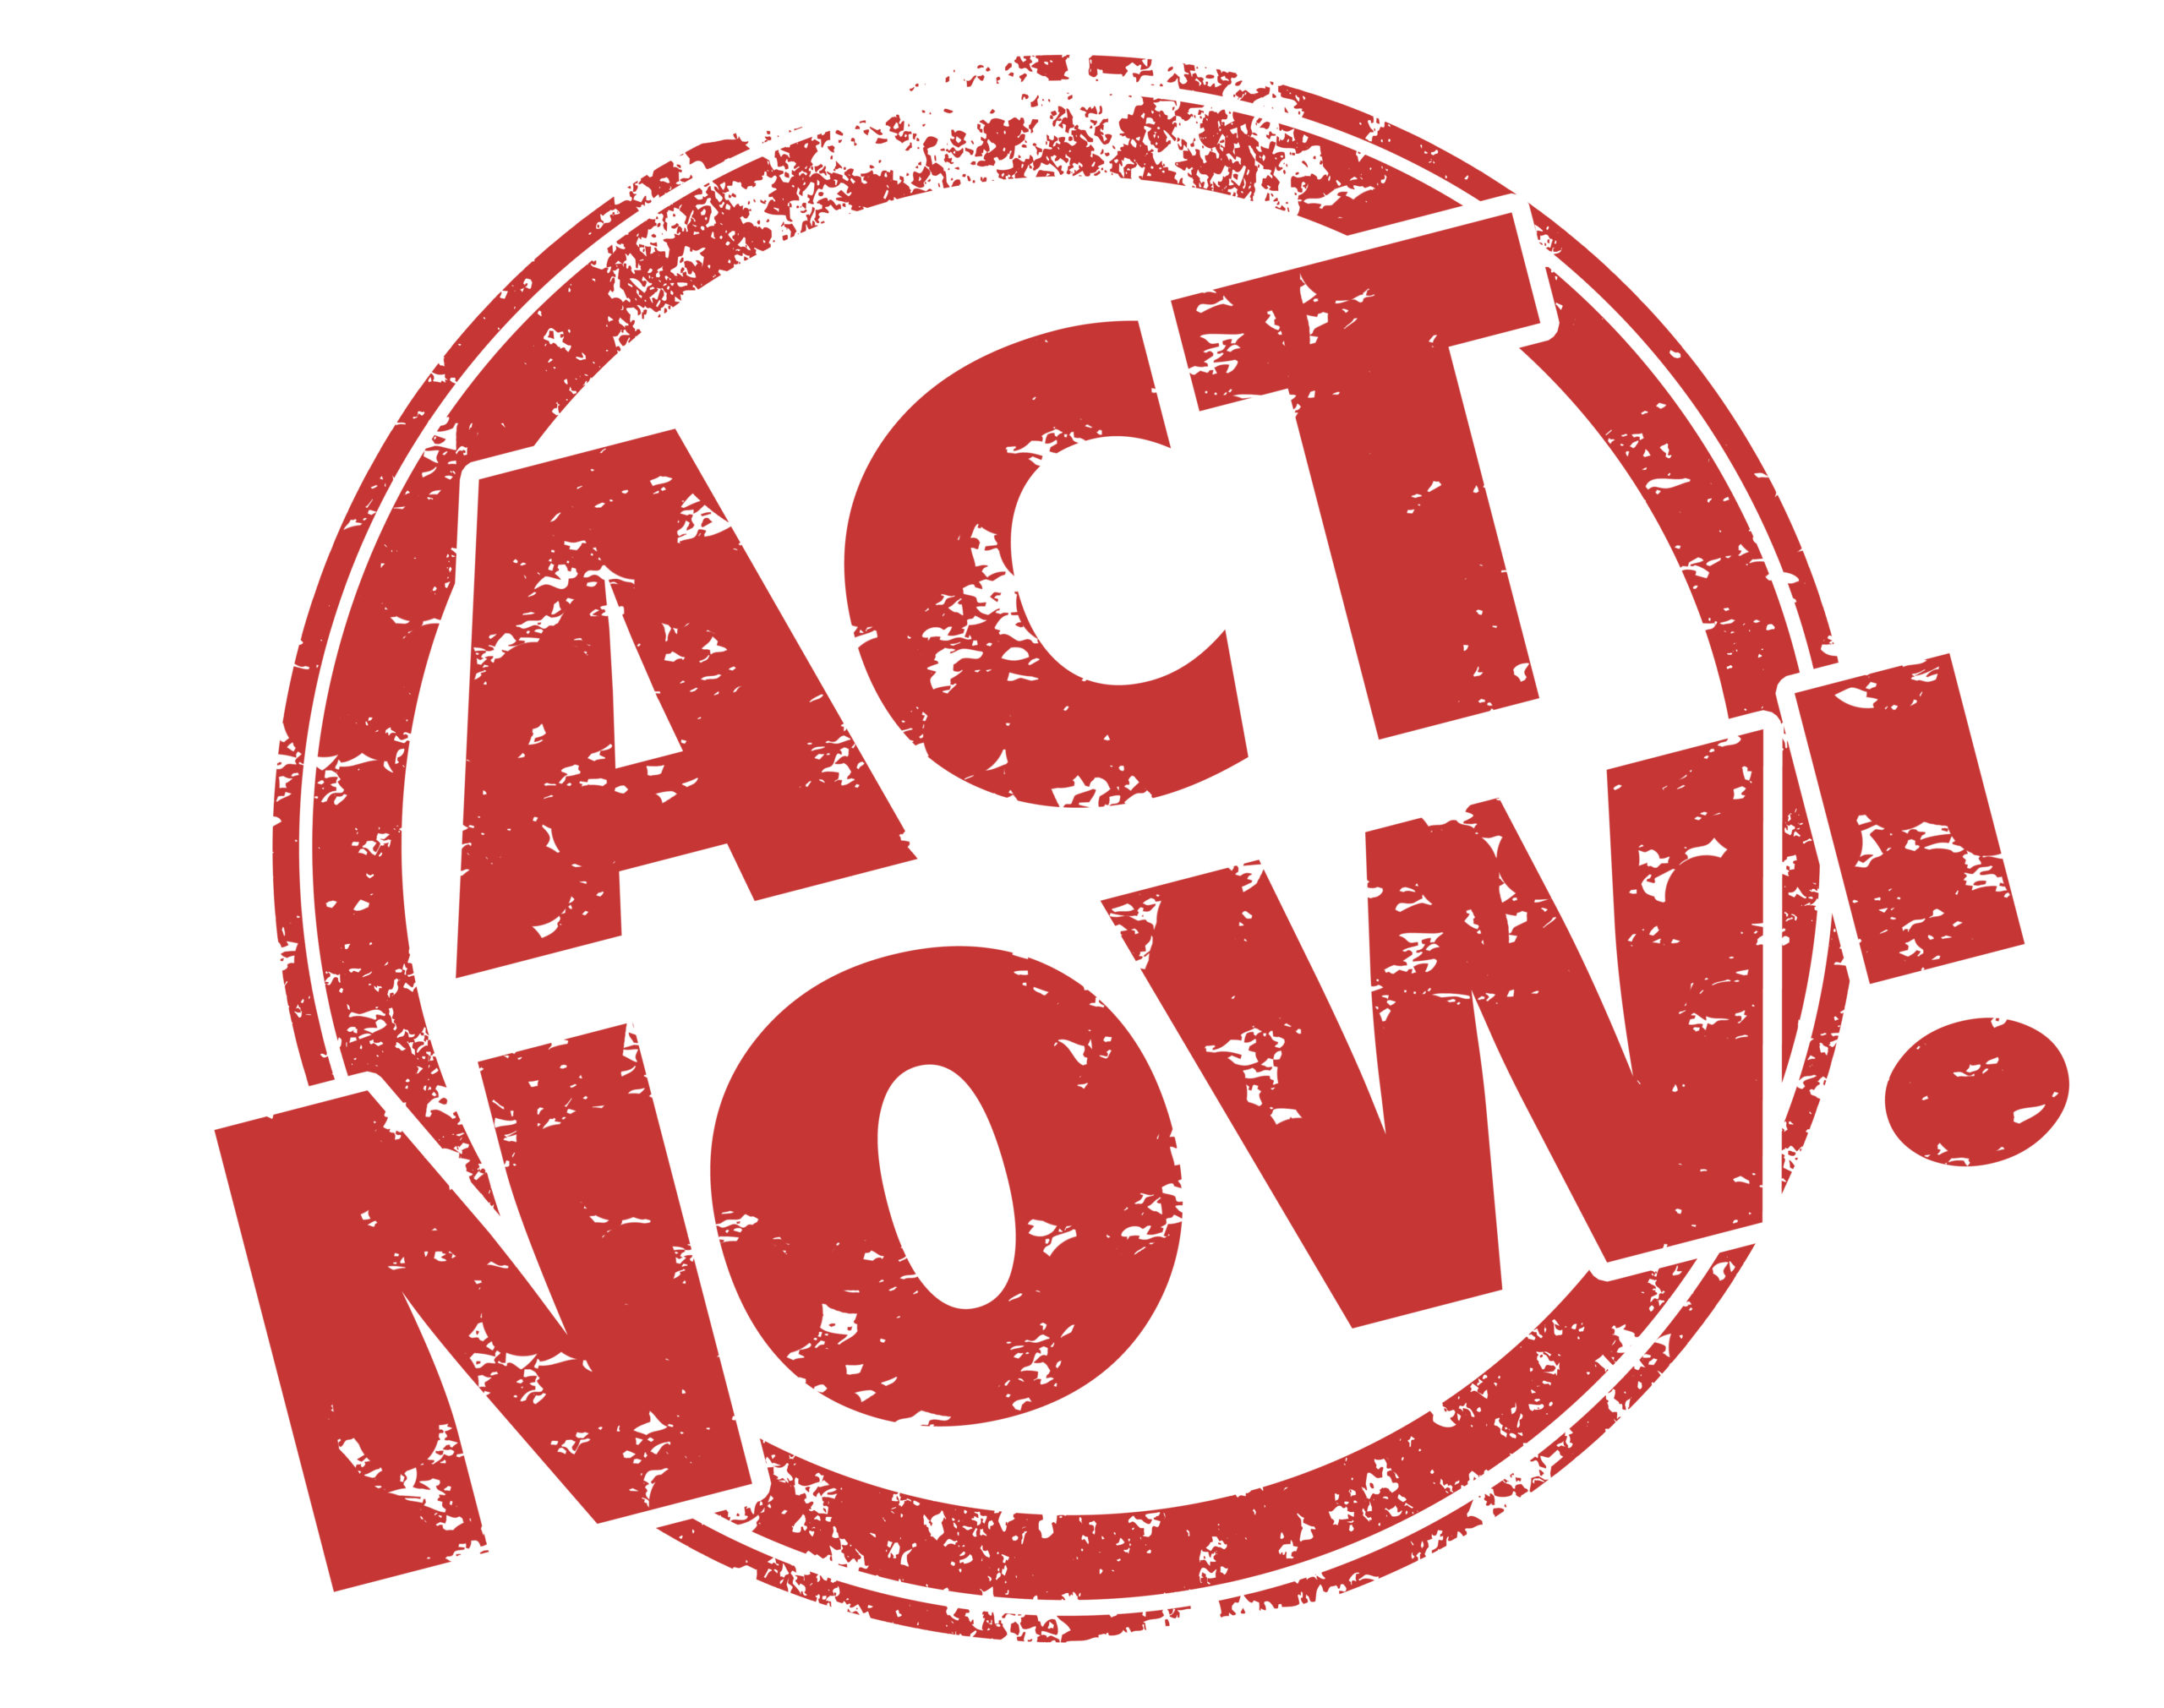 Act now or lose out, your call